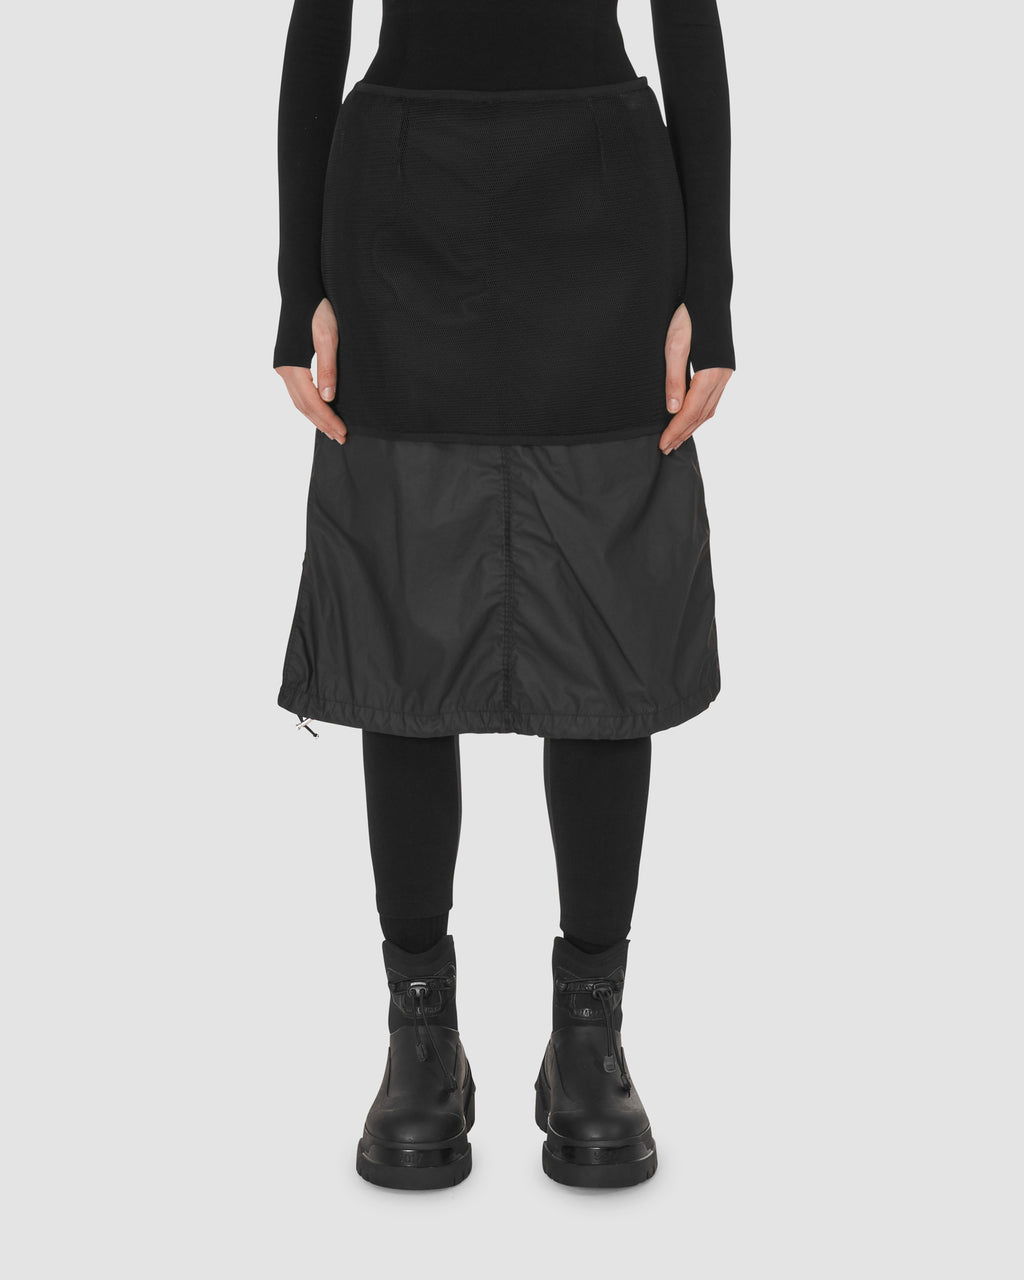 1017 ALYX 9SM | MONCLER SKIRT | Skirt | BLACK, Google Shopping, Moncler, S20, Skirts, Woman